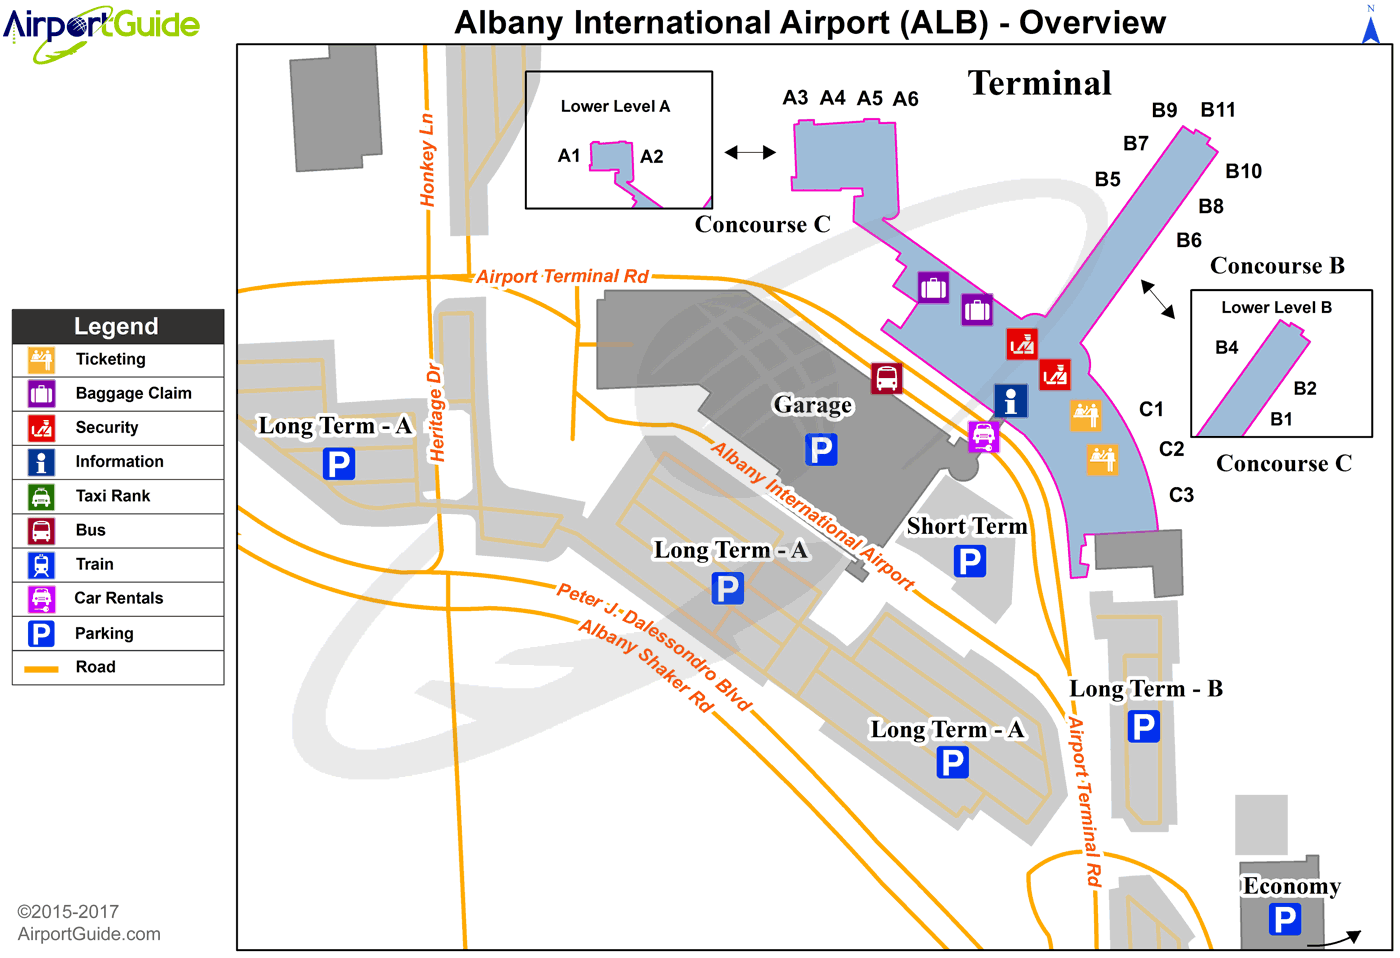 Albany - Albany International (ALB) Airport Terminal Map - Overview